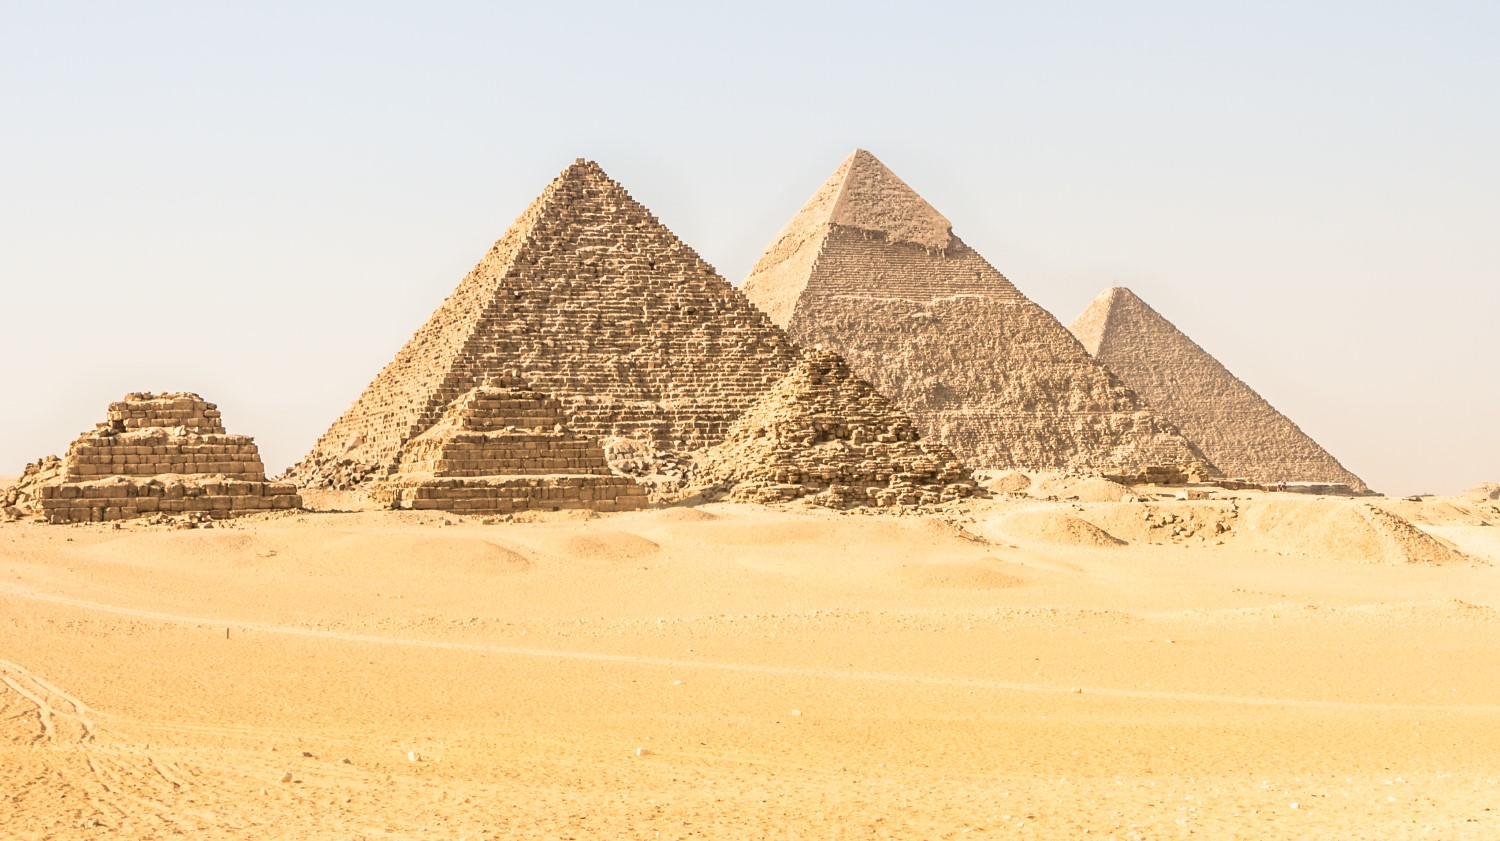 OneCoin Claims It's Not a Ponzi or Pyramid Scheme